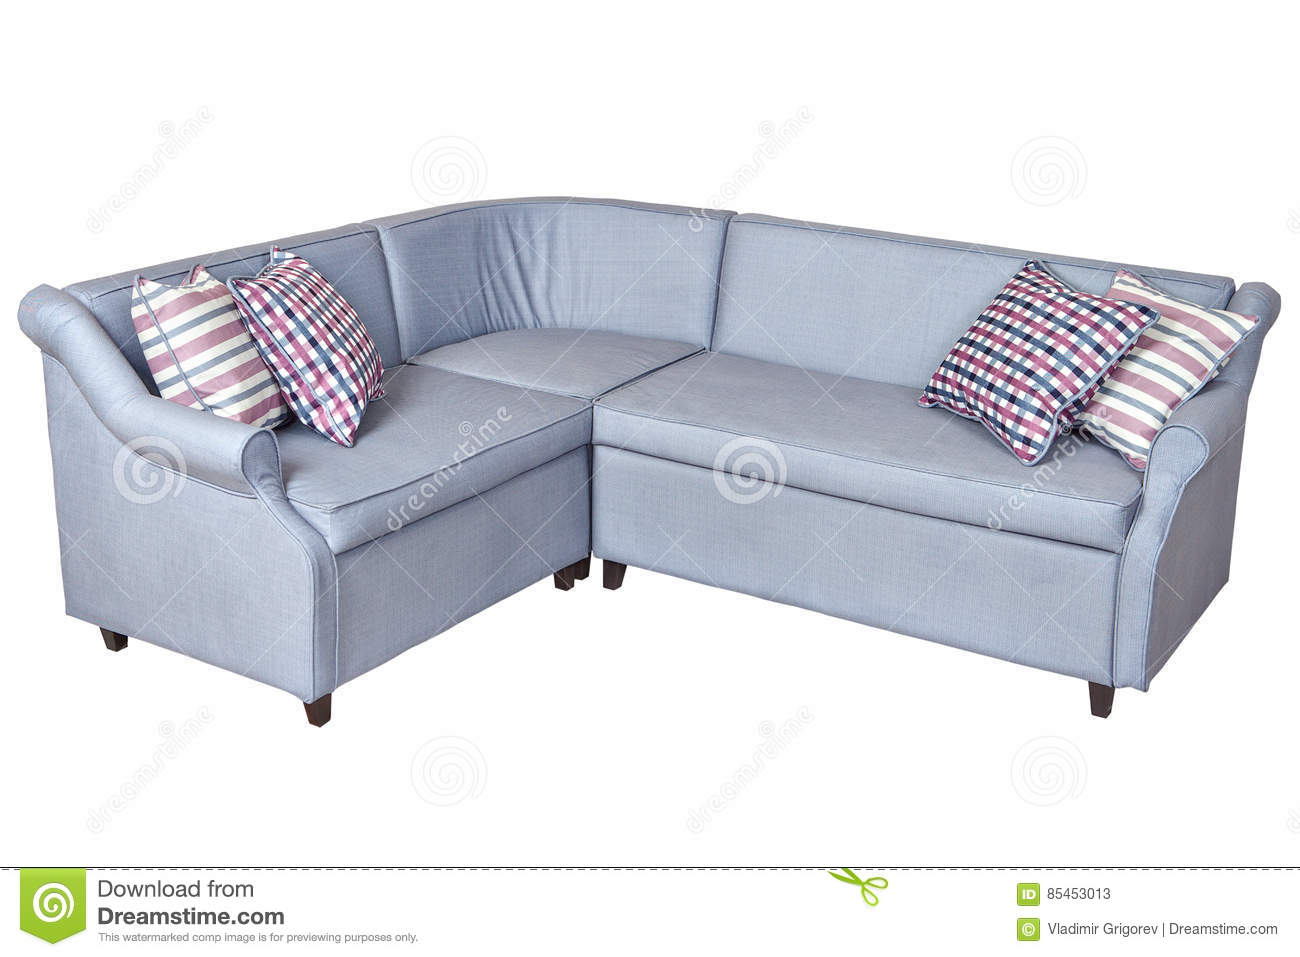 Tremendous Light Gray Corner Fold Out Upholstered In Fabric Sofa Bed Camellatalisay Diy Chair Ideas Camellatalisaycom